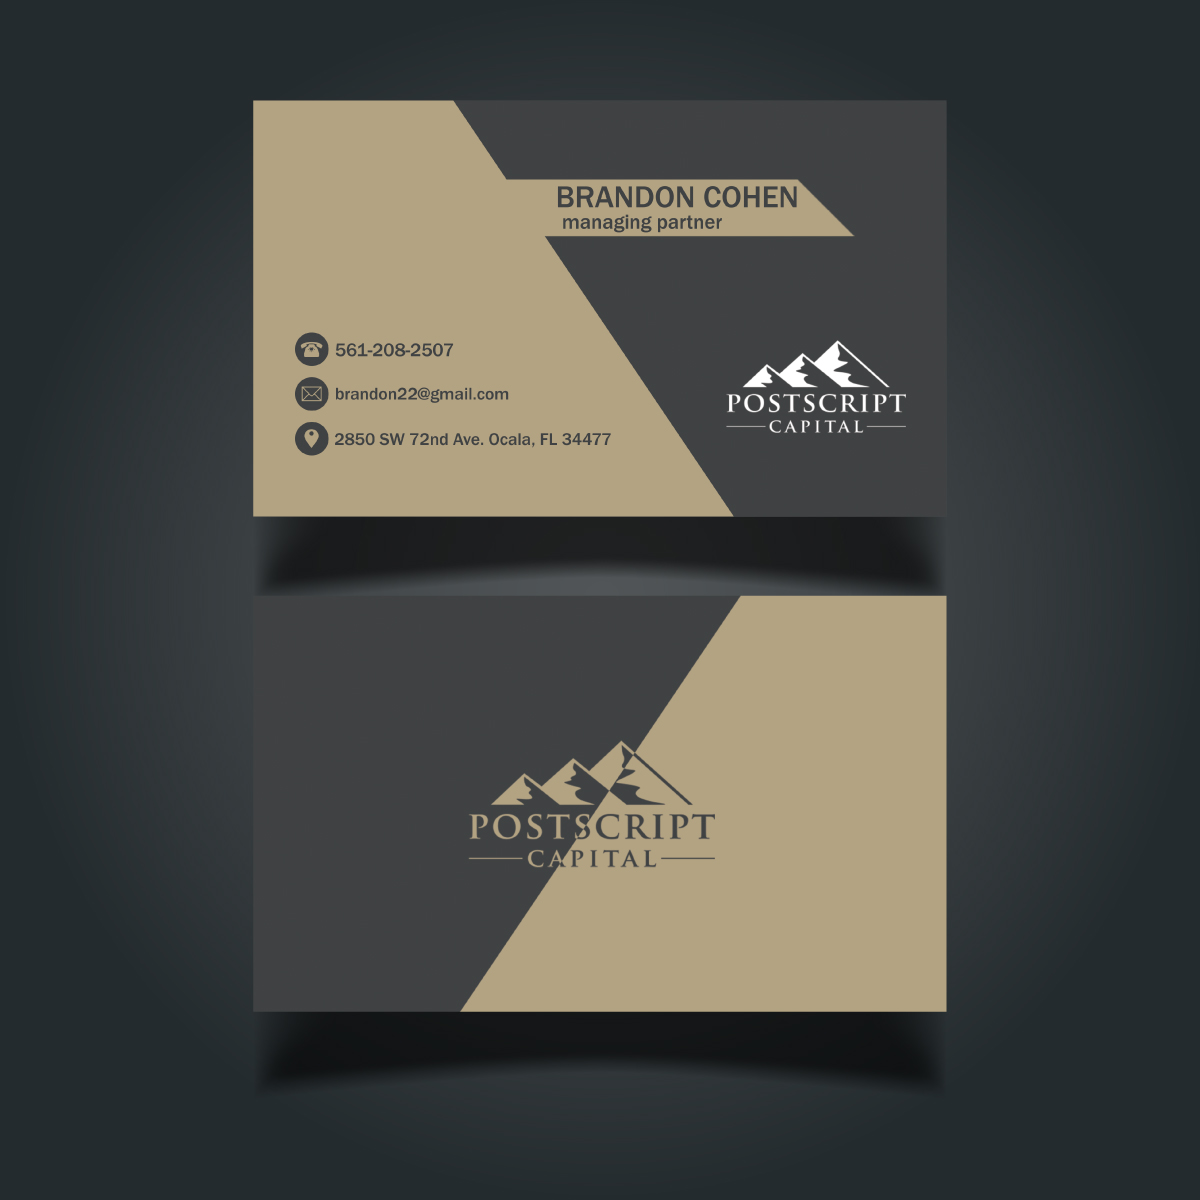 Masculine conservative finance business card design for a company business card design by ralkov for this project design 14634310 reheart Image collections